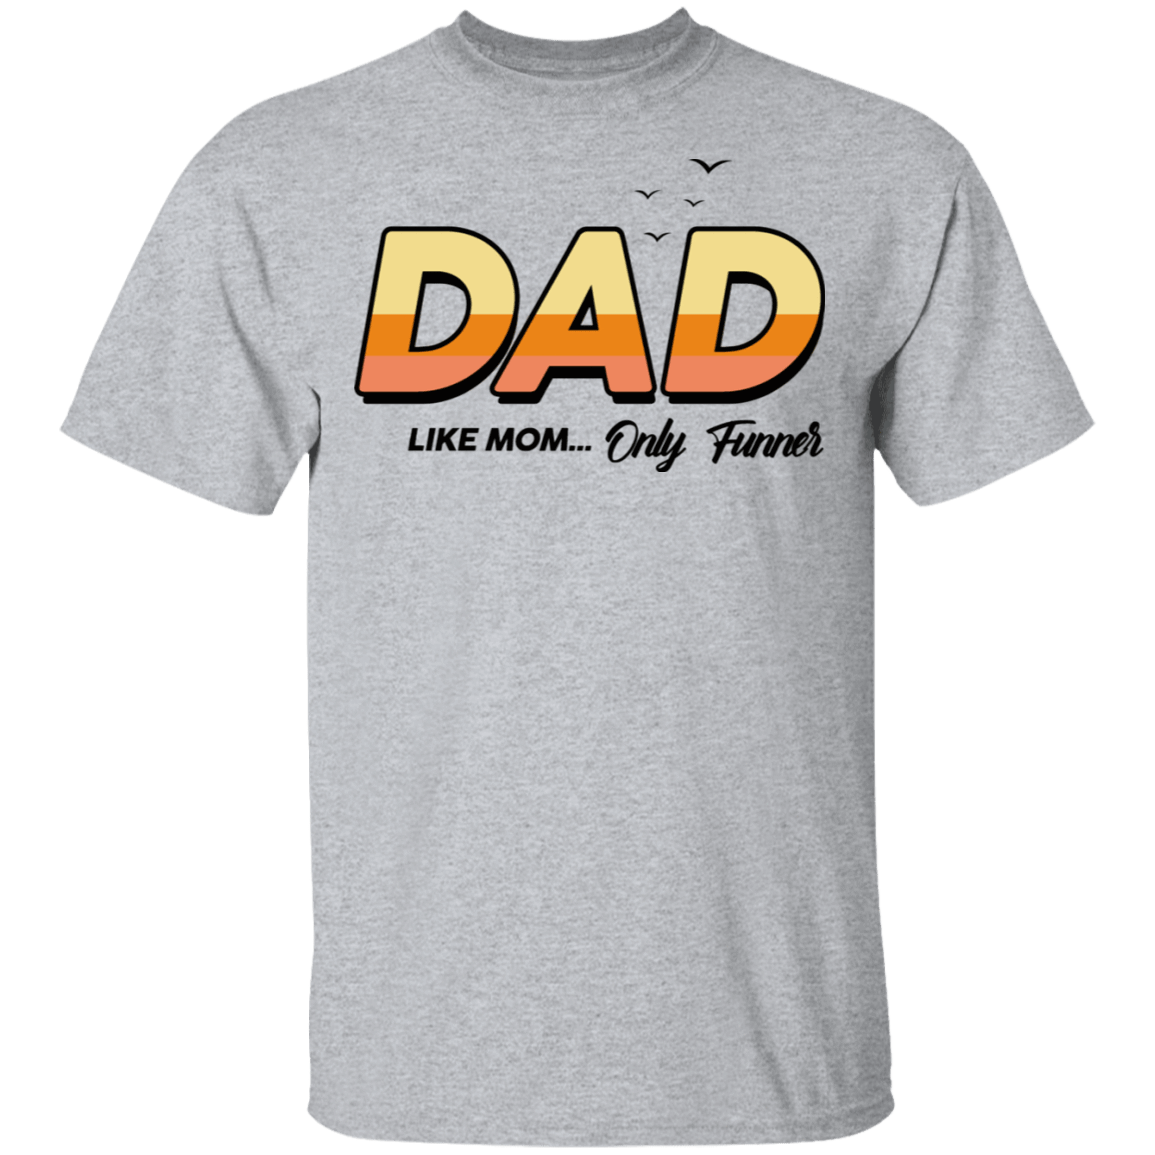 Dad Like Mom ... Only Funner T-Shirts, Hoodies, Tank 22-115-79999096-254 - Tee Ript